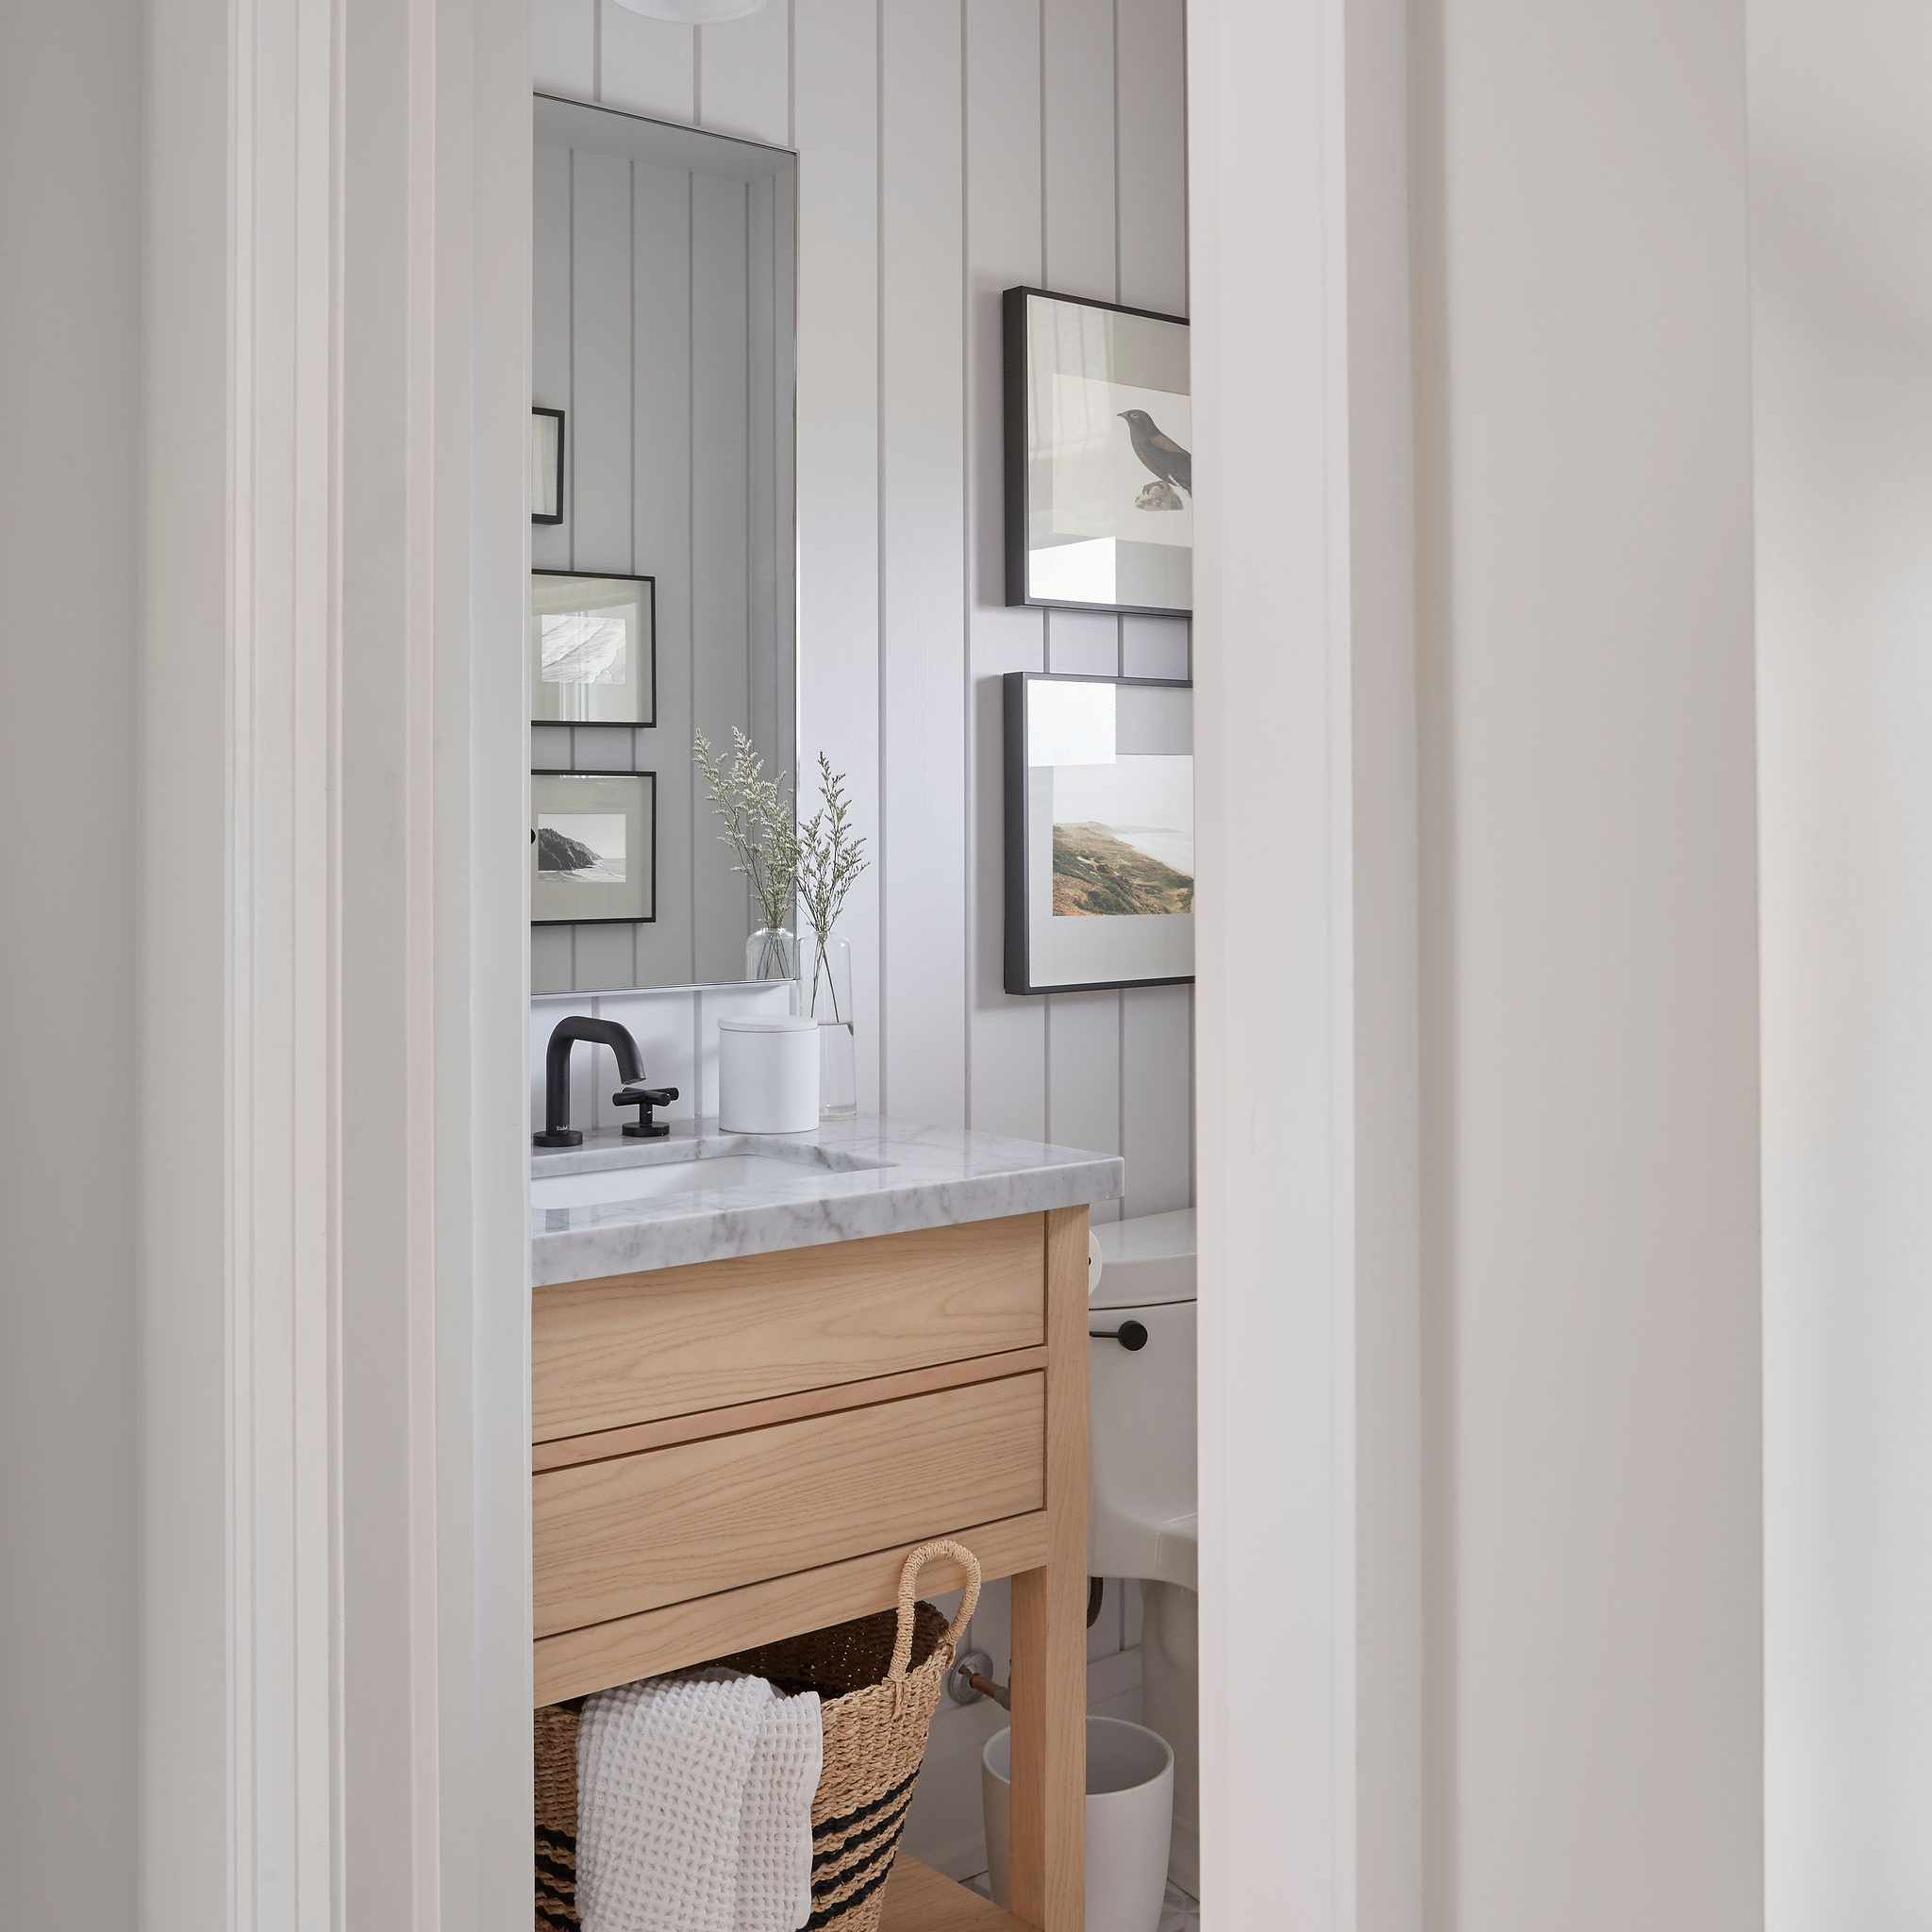 Lovely white bathroom with natural wood cabinetry and marble countertop